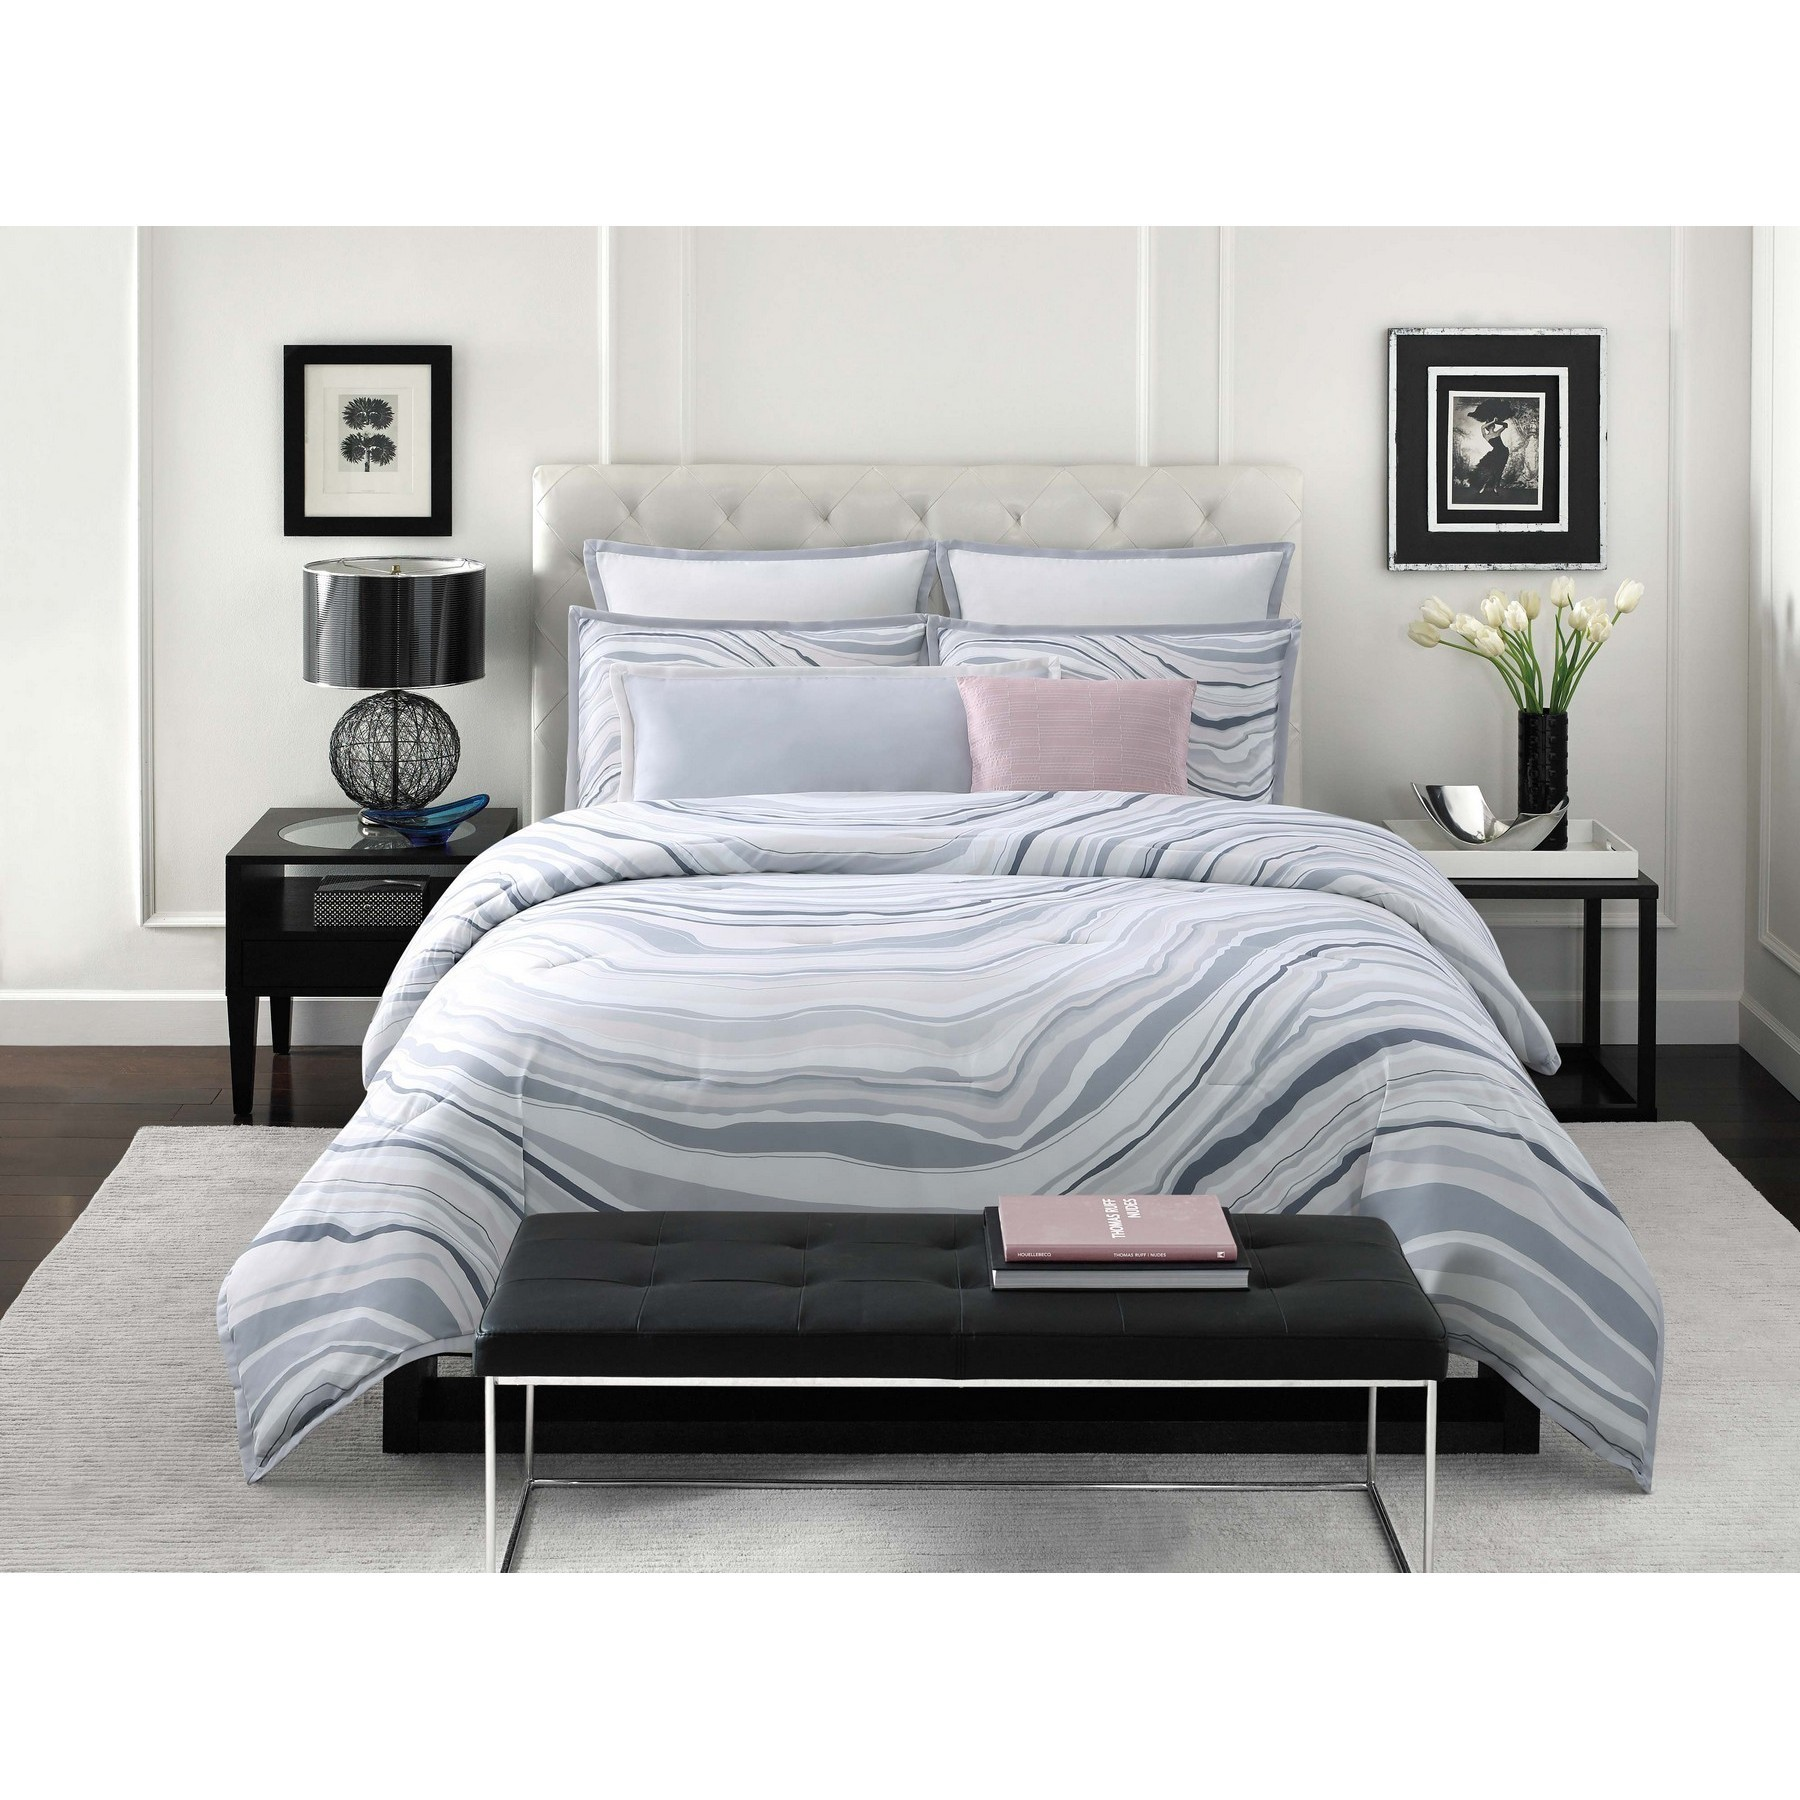 Vince Camuto Valero 3 Piece Comforter Set - Free Shipping Today ...